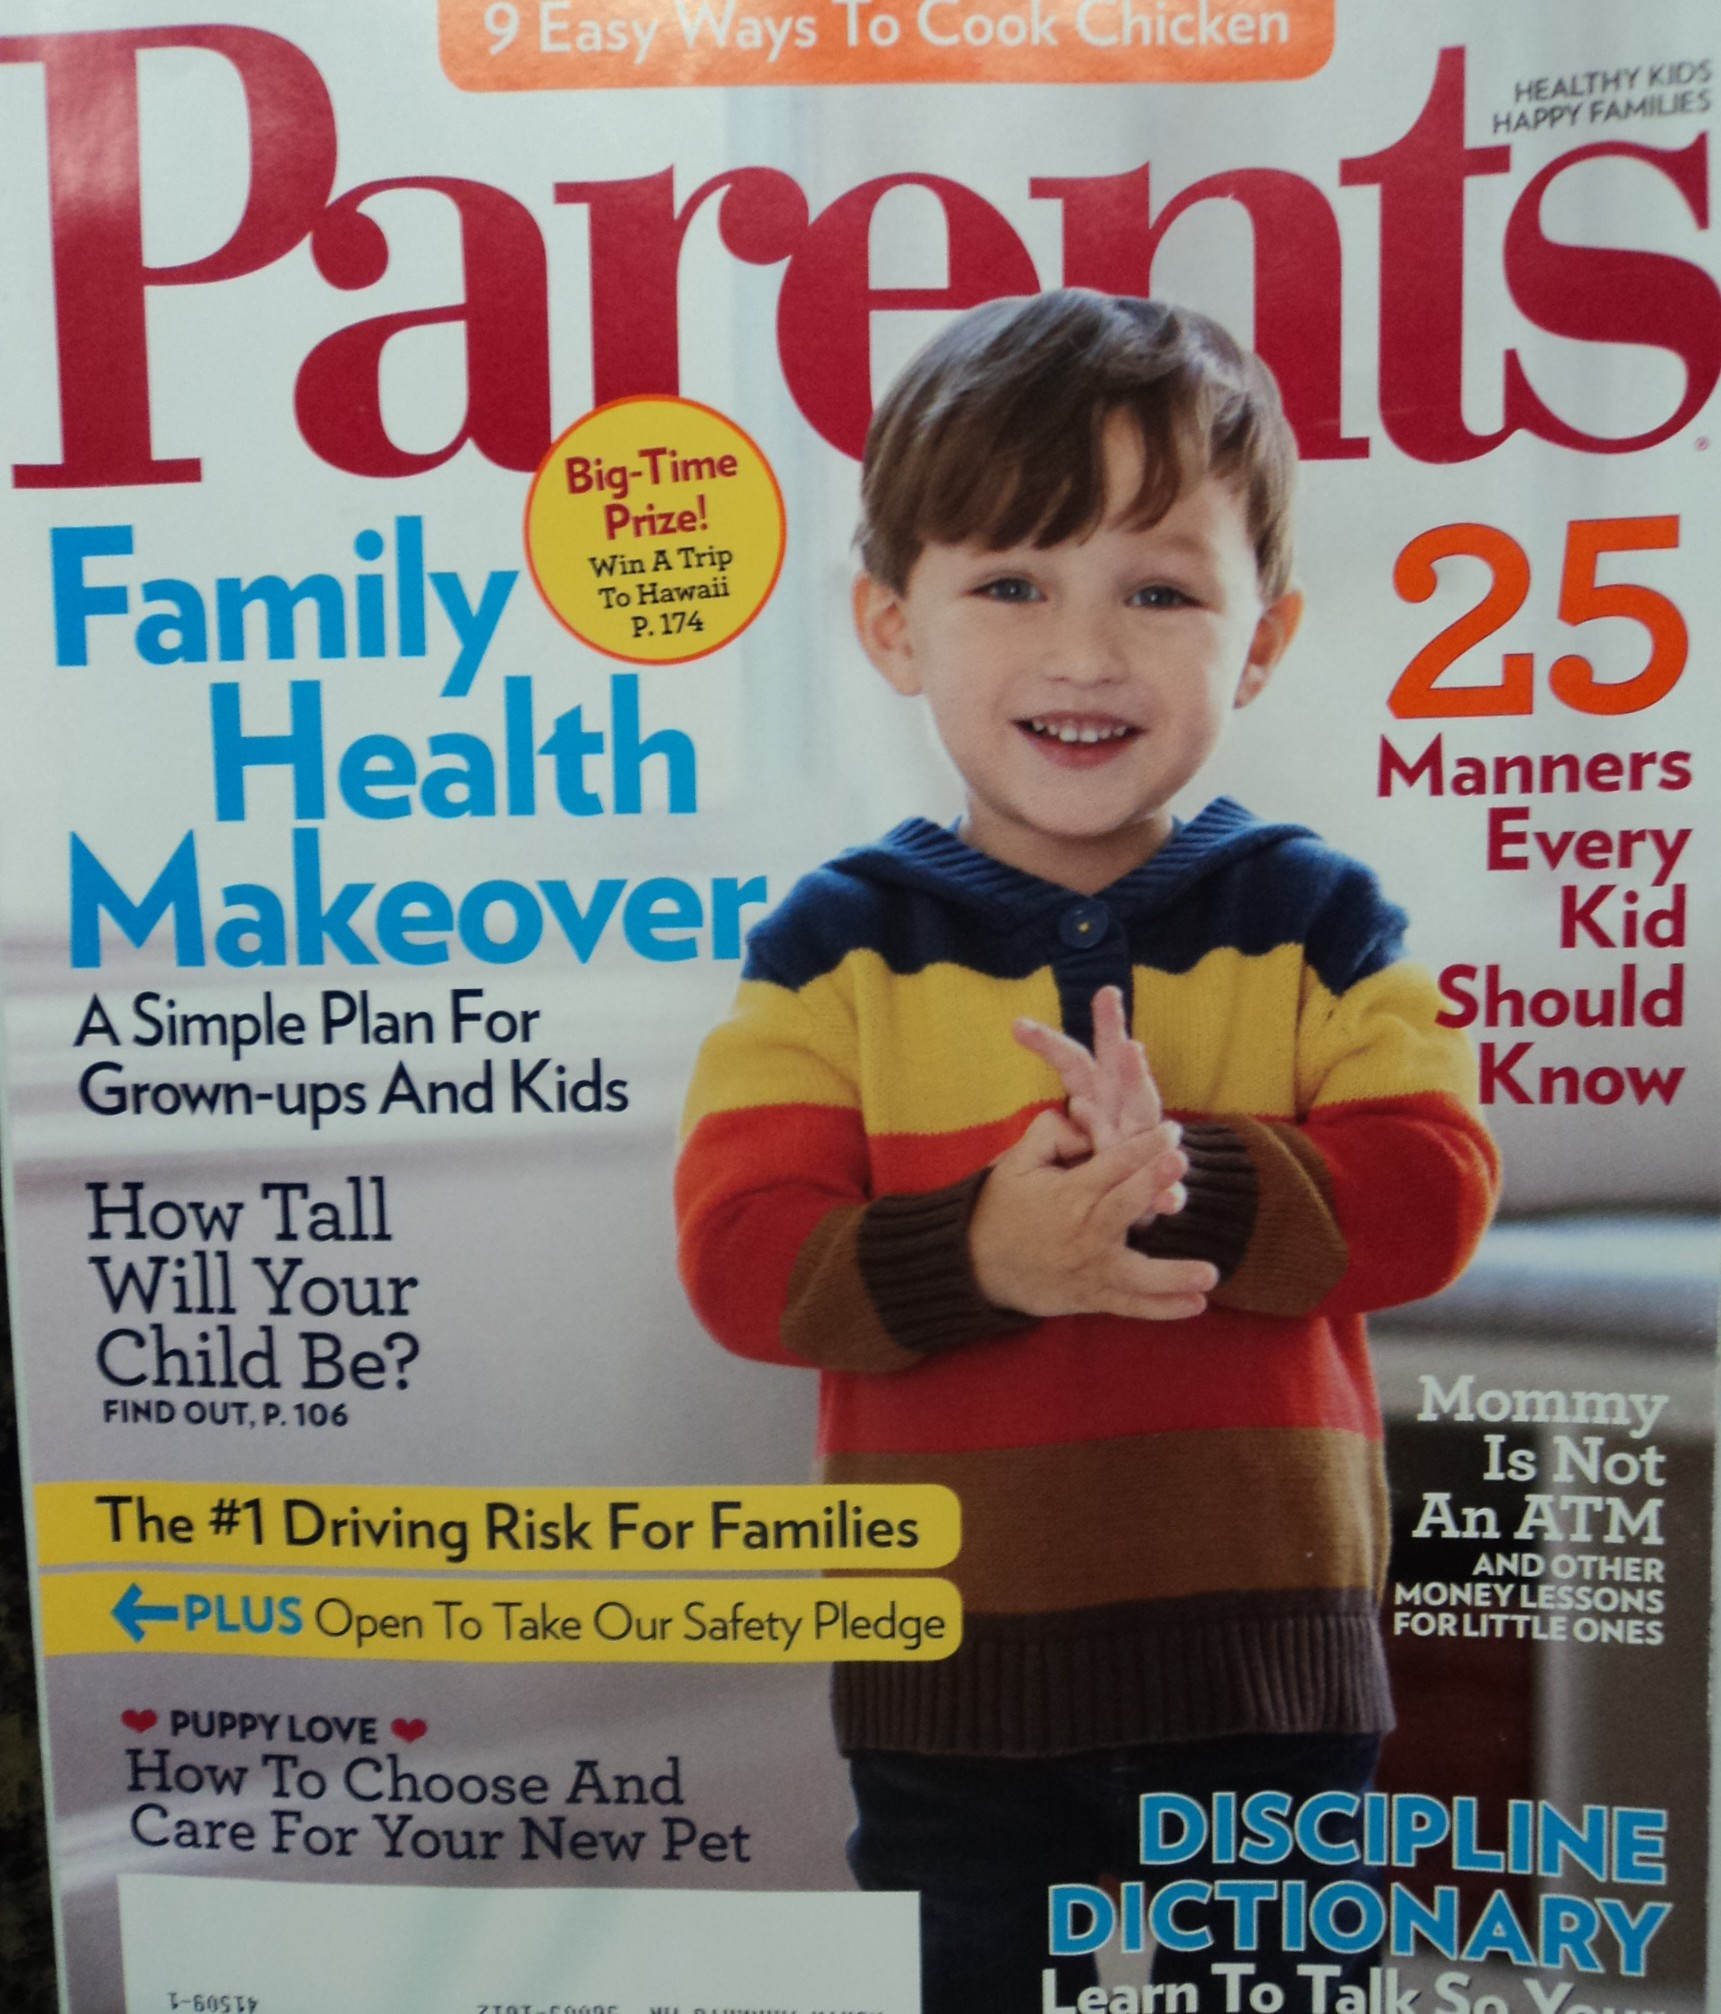 parents-magazine-amazon-coupon-march 2011